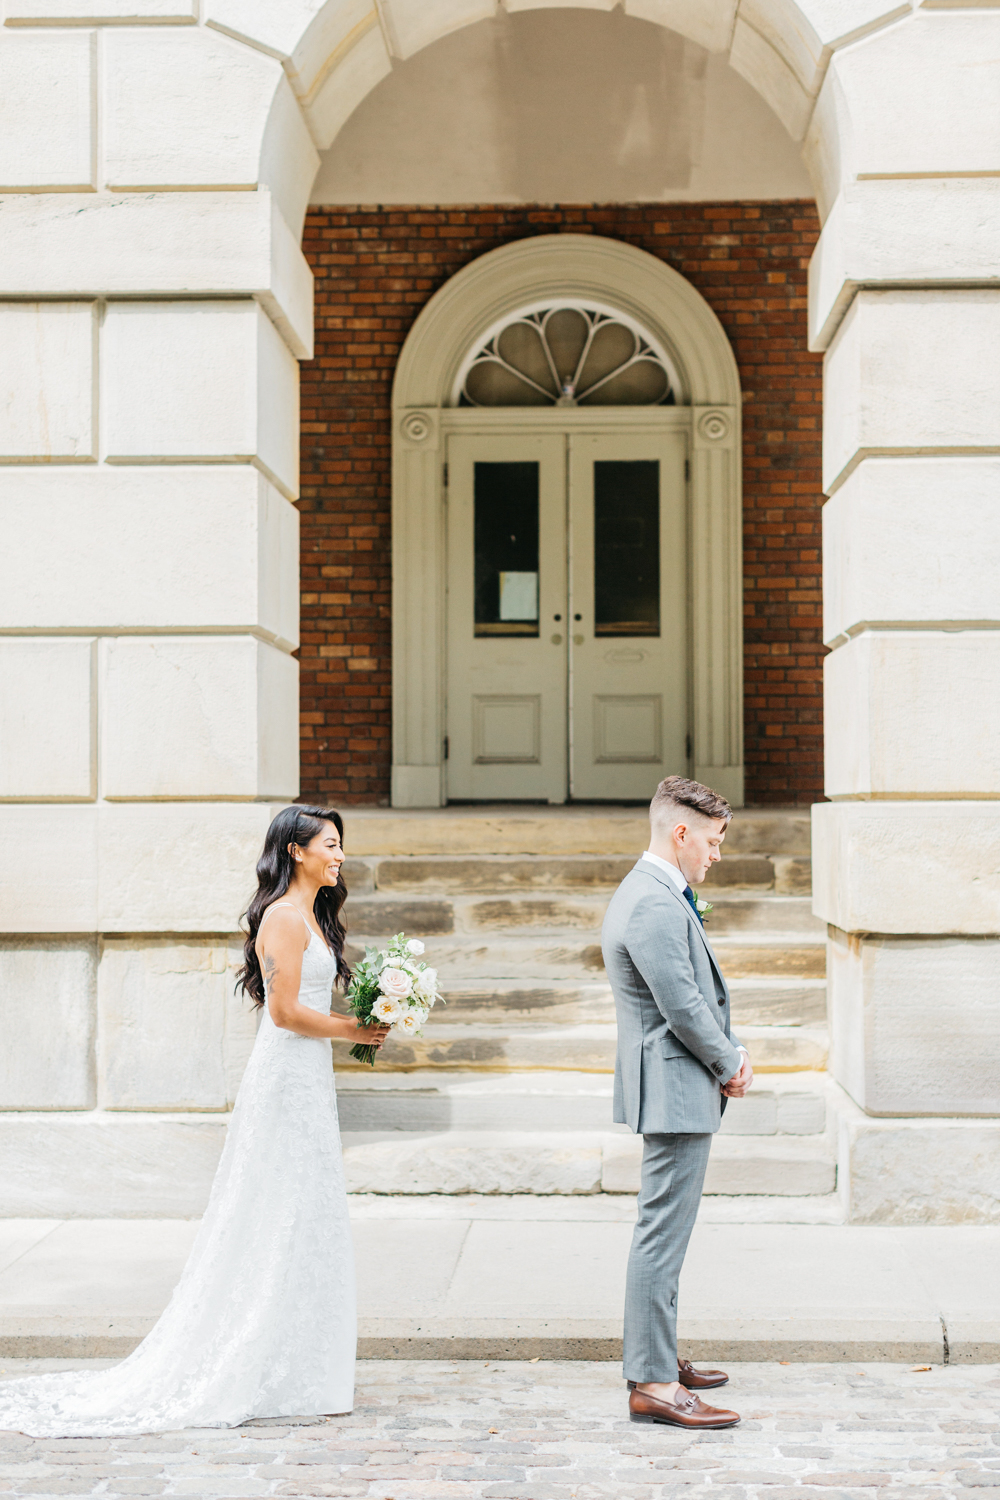 Bride and groom's first look at Osgoode Hall